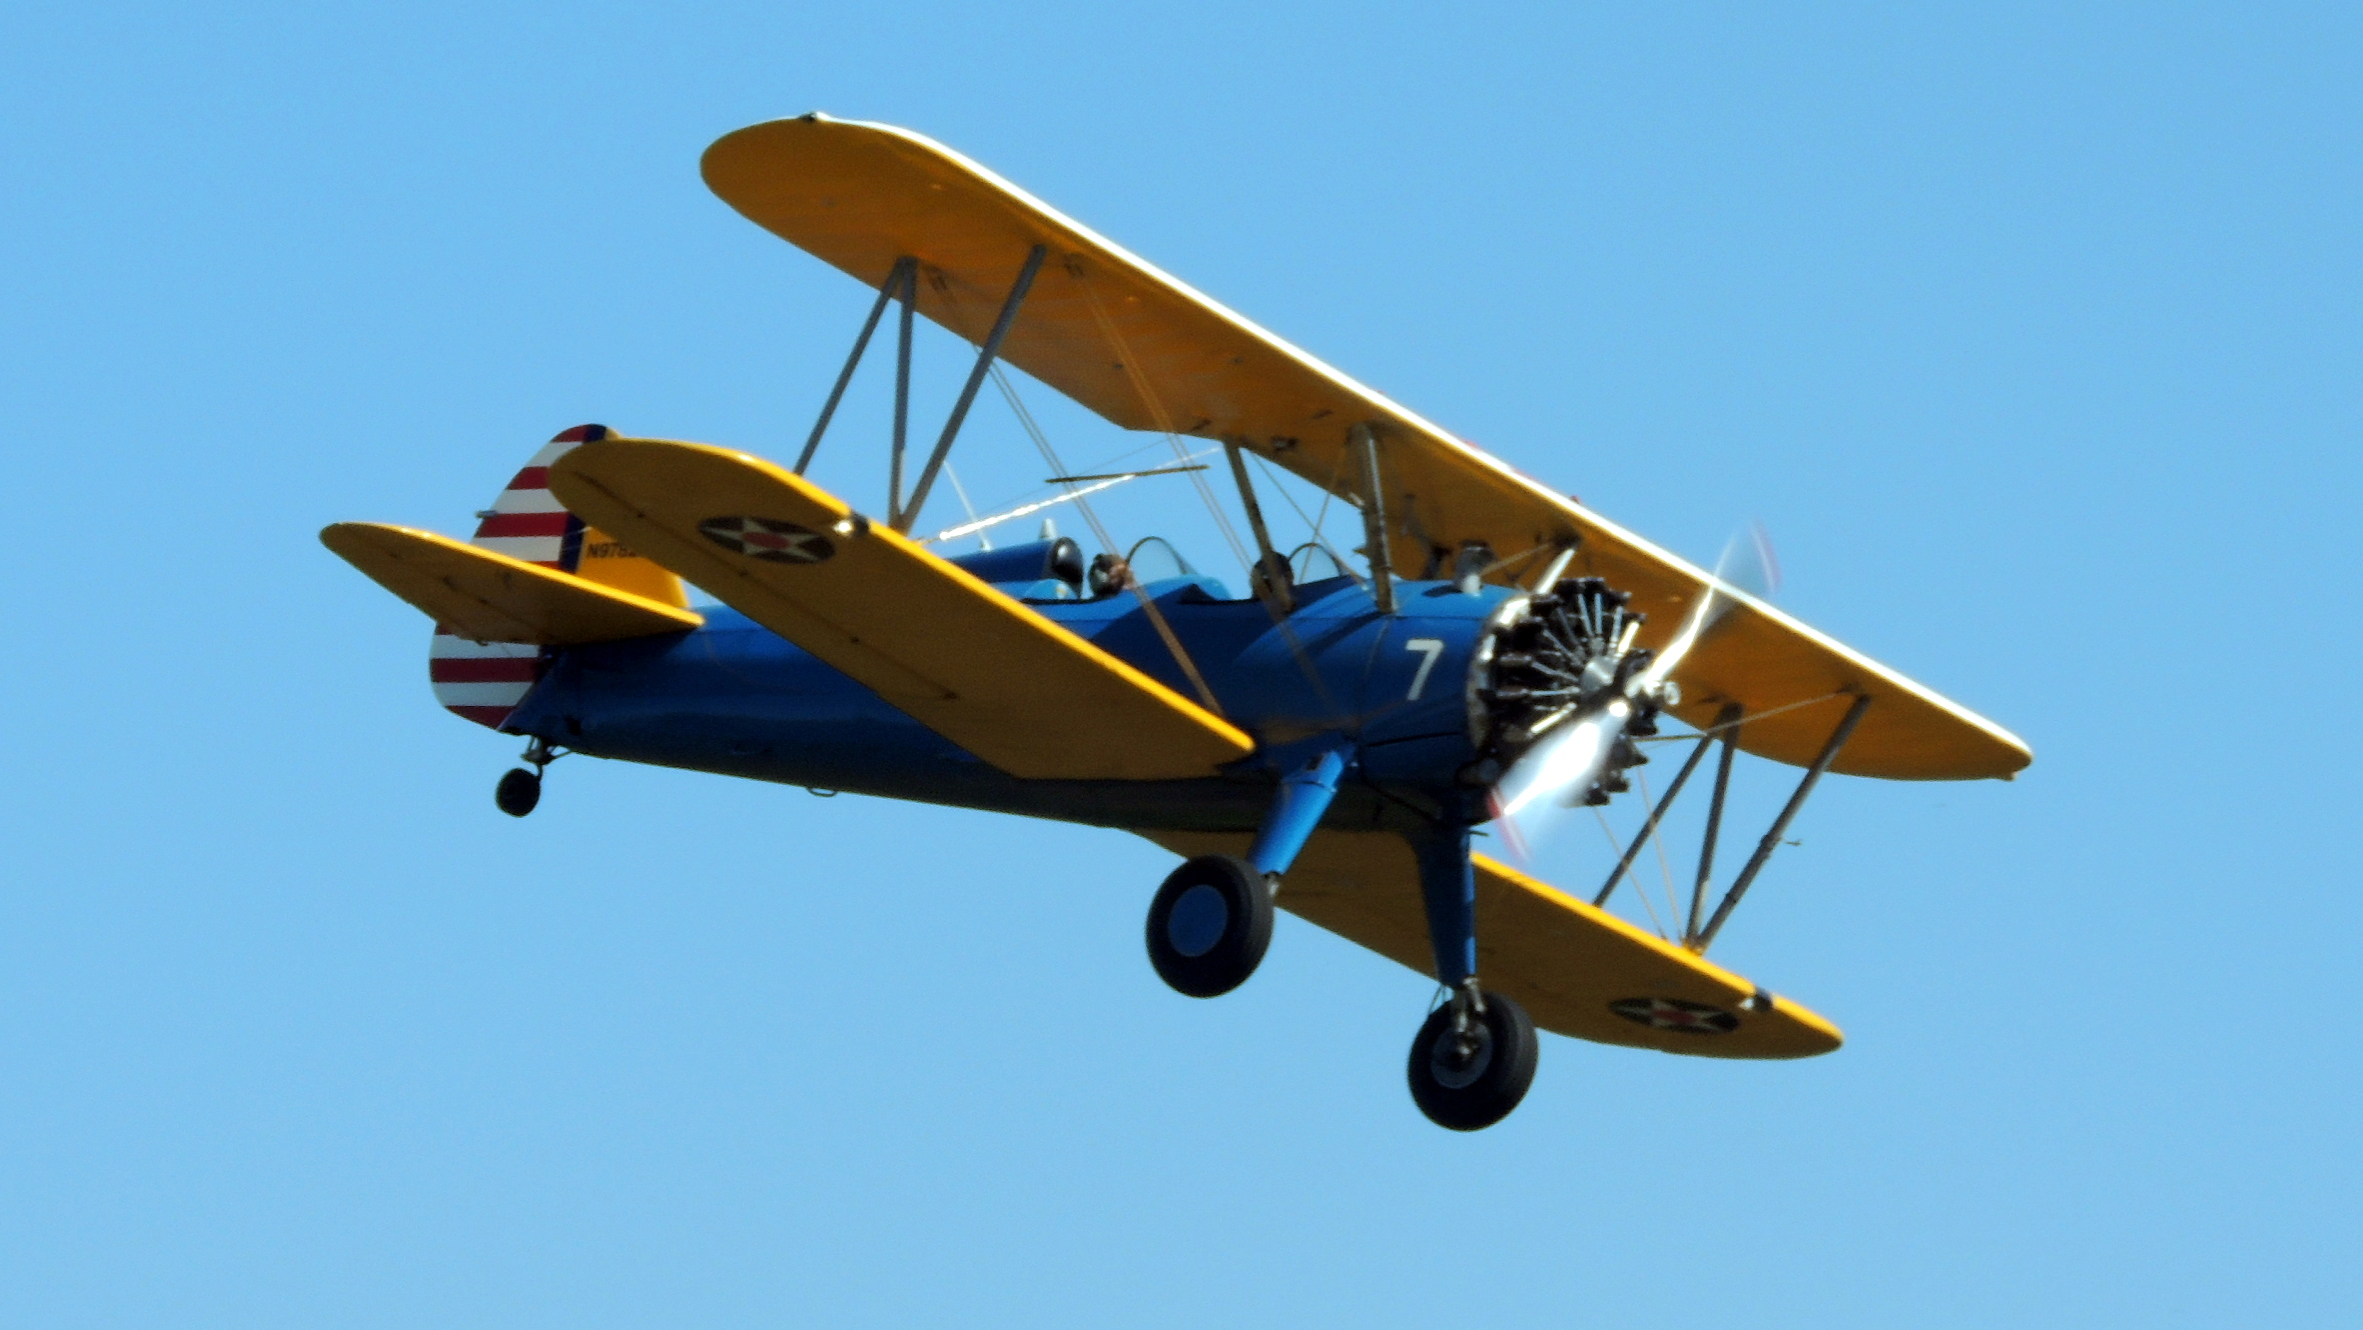 This Stearman was taking some Veterans for an amzing ride !